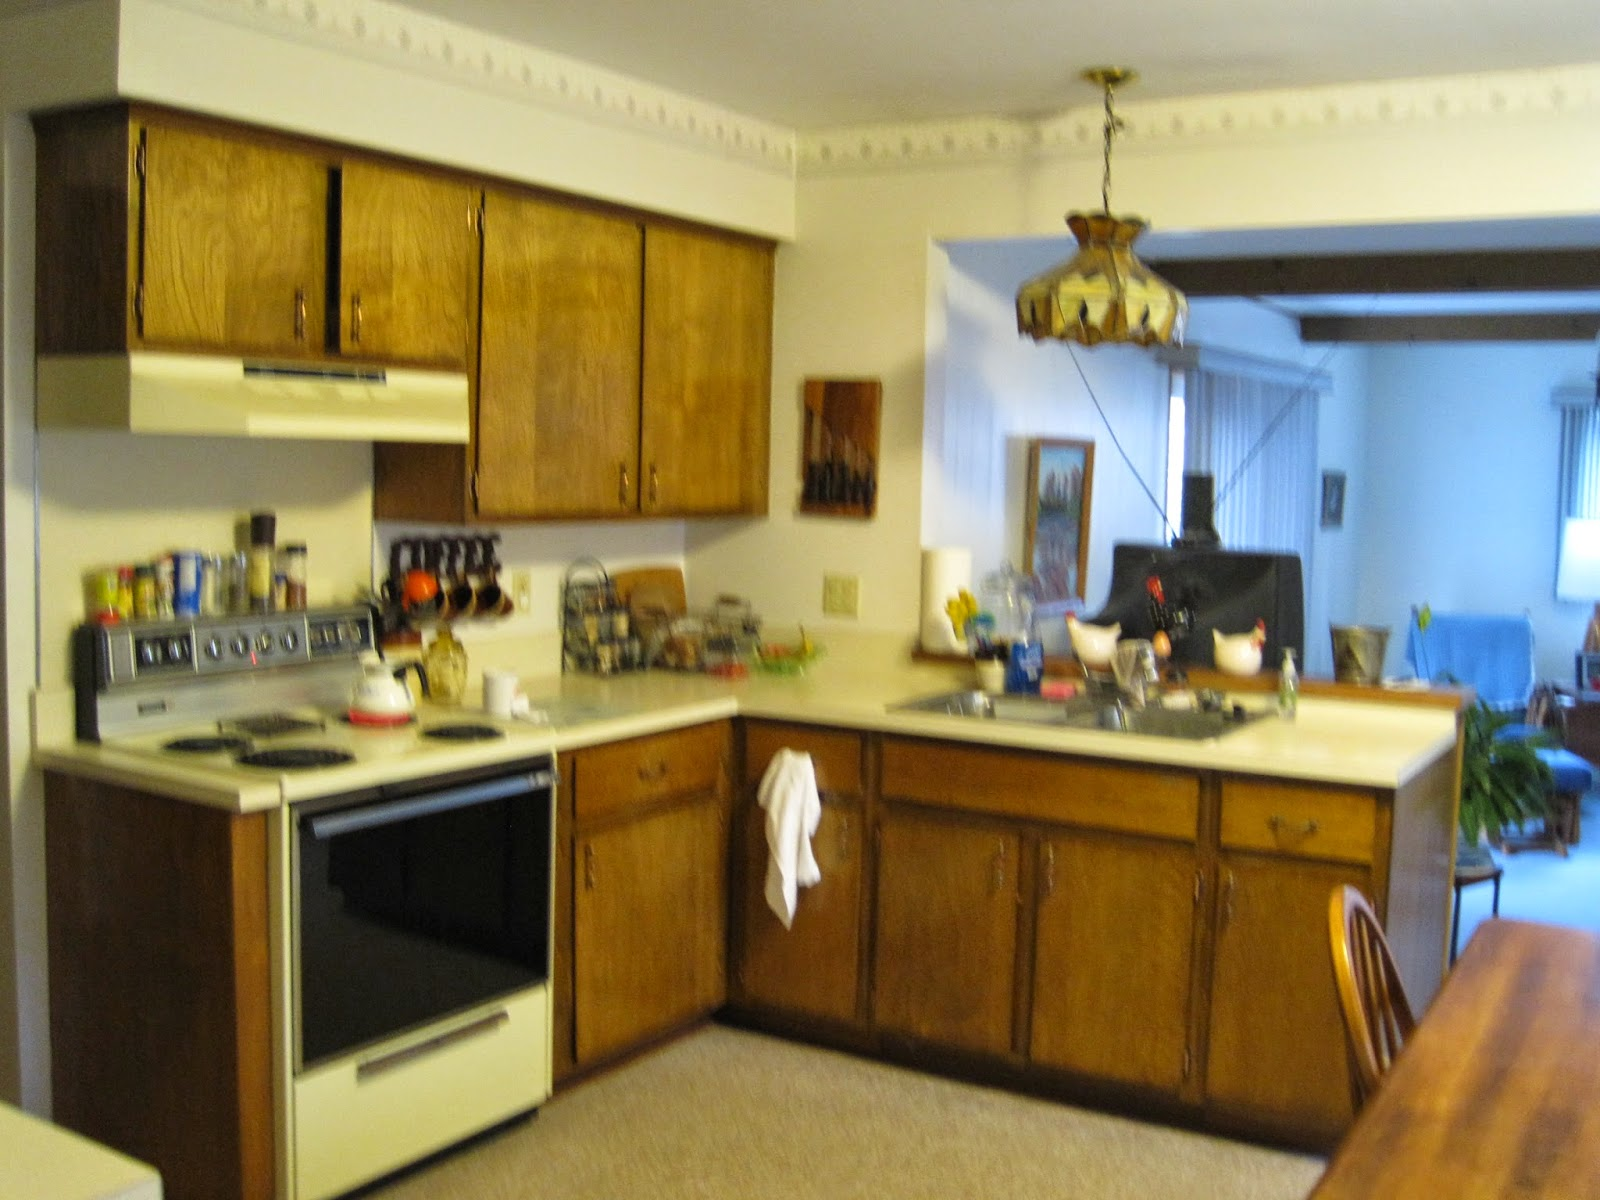 The Literate Quilter: Big Changes In Small Kitchens